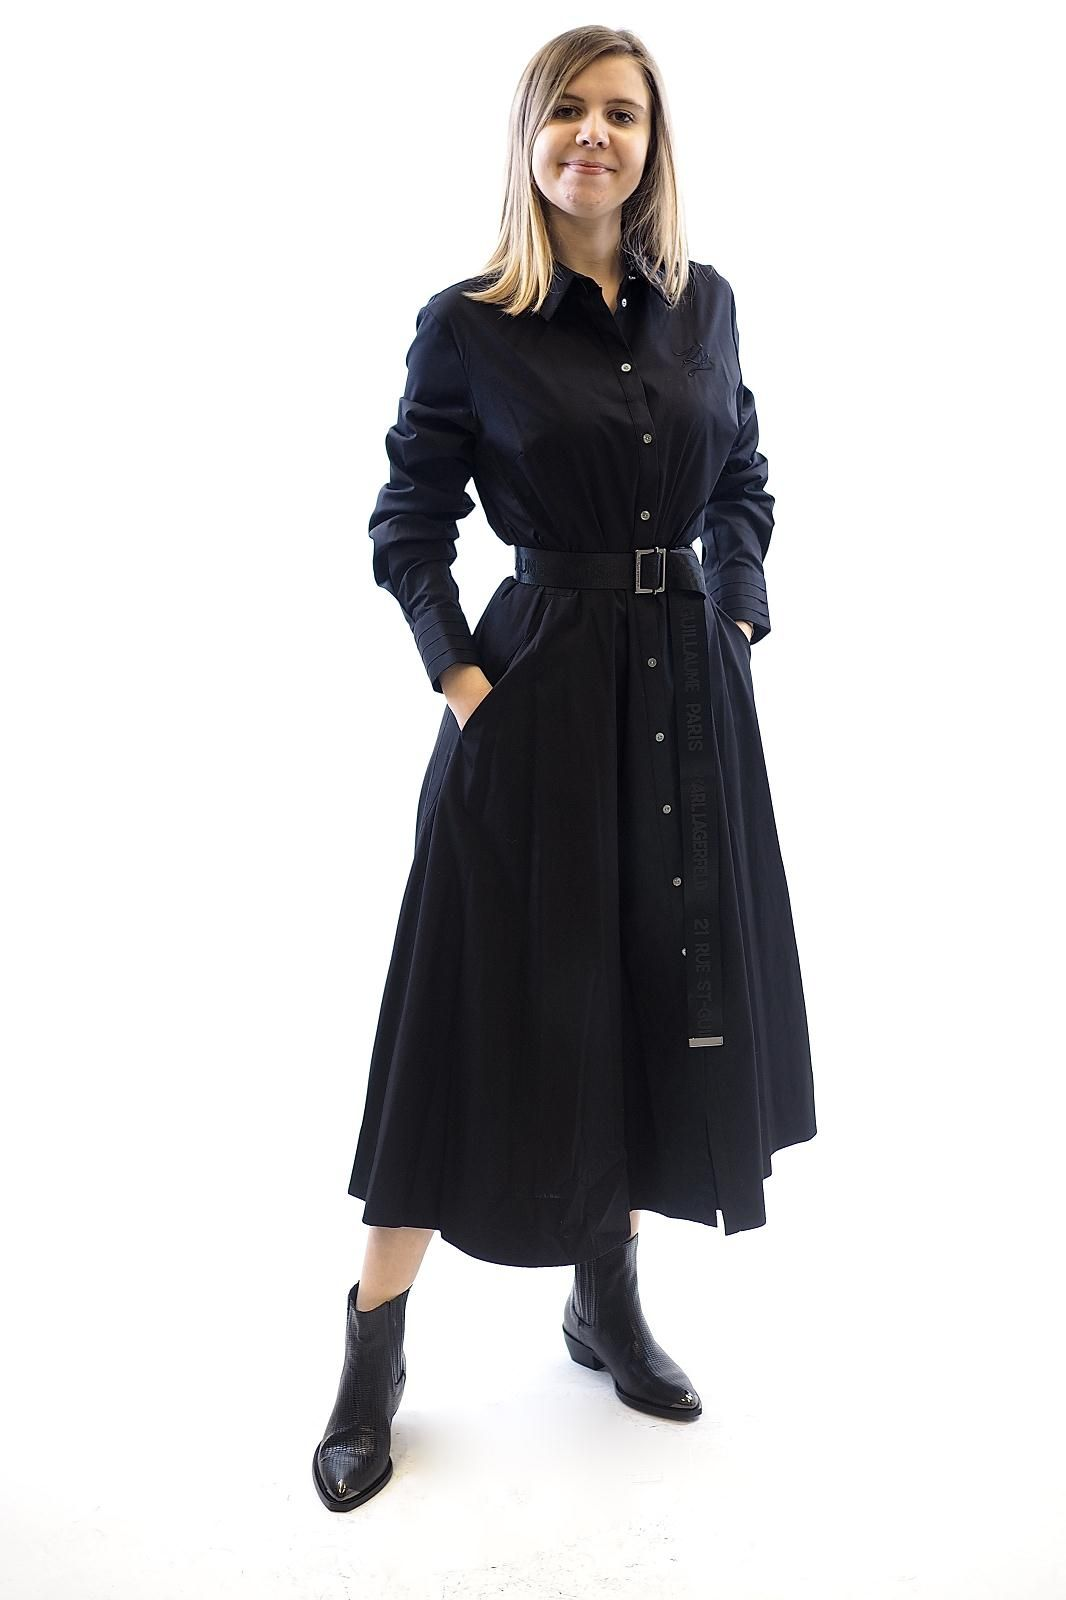 Karl Lagerfeld robe Noir femmes (KL-Robe popeline - 1300 Robe chemisier noire) - Marine | Much more than shoes